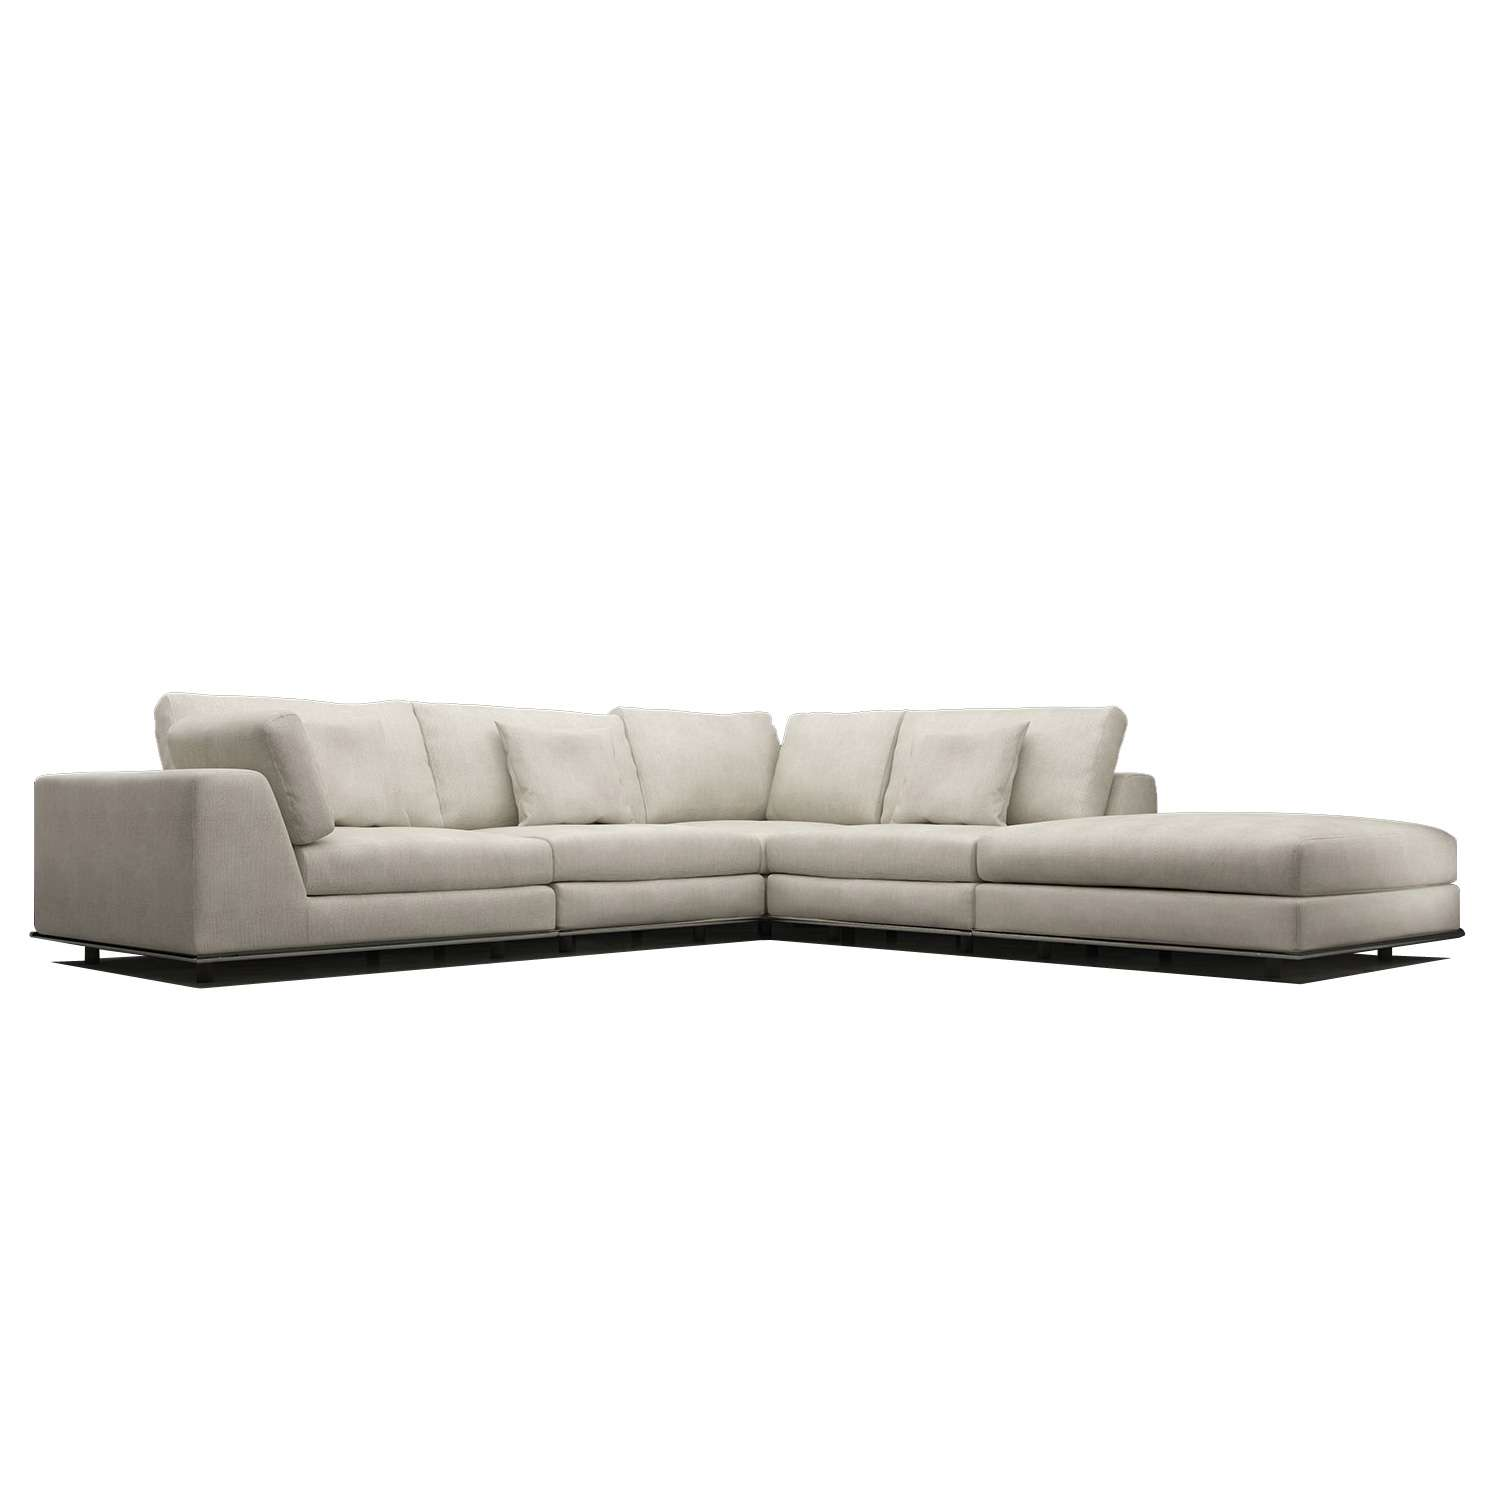 Modloft Chelsea | Modloft | Furniture Wholesale Miami